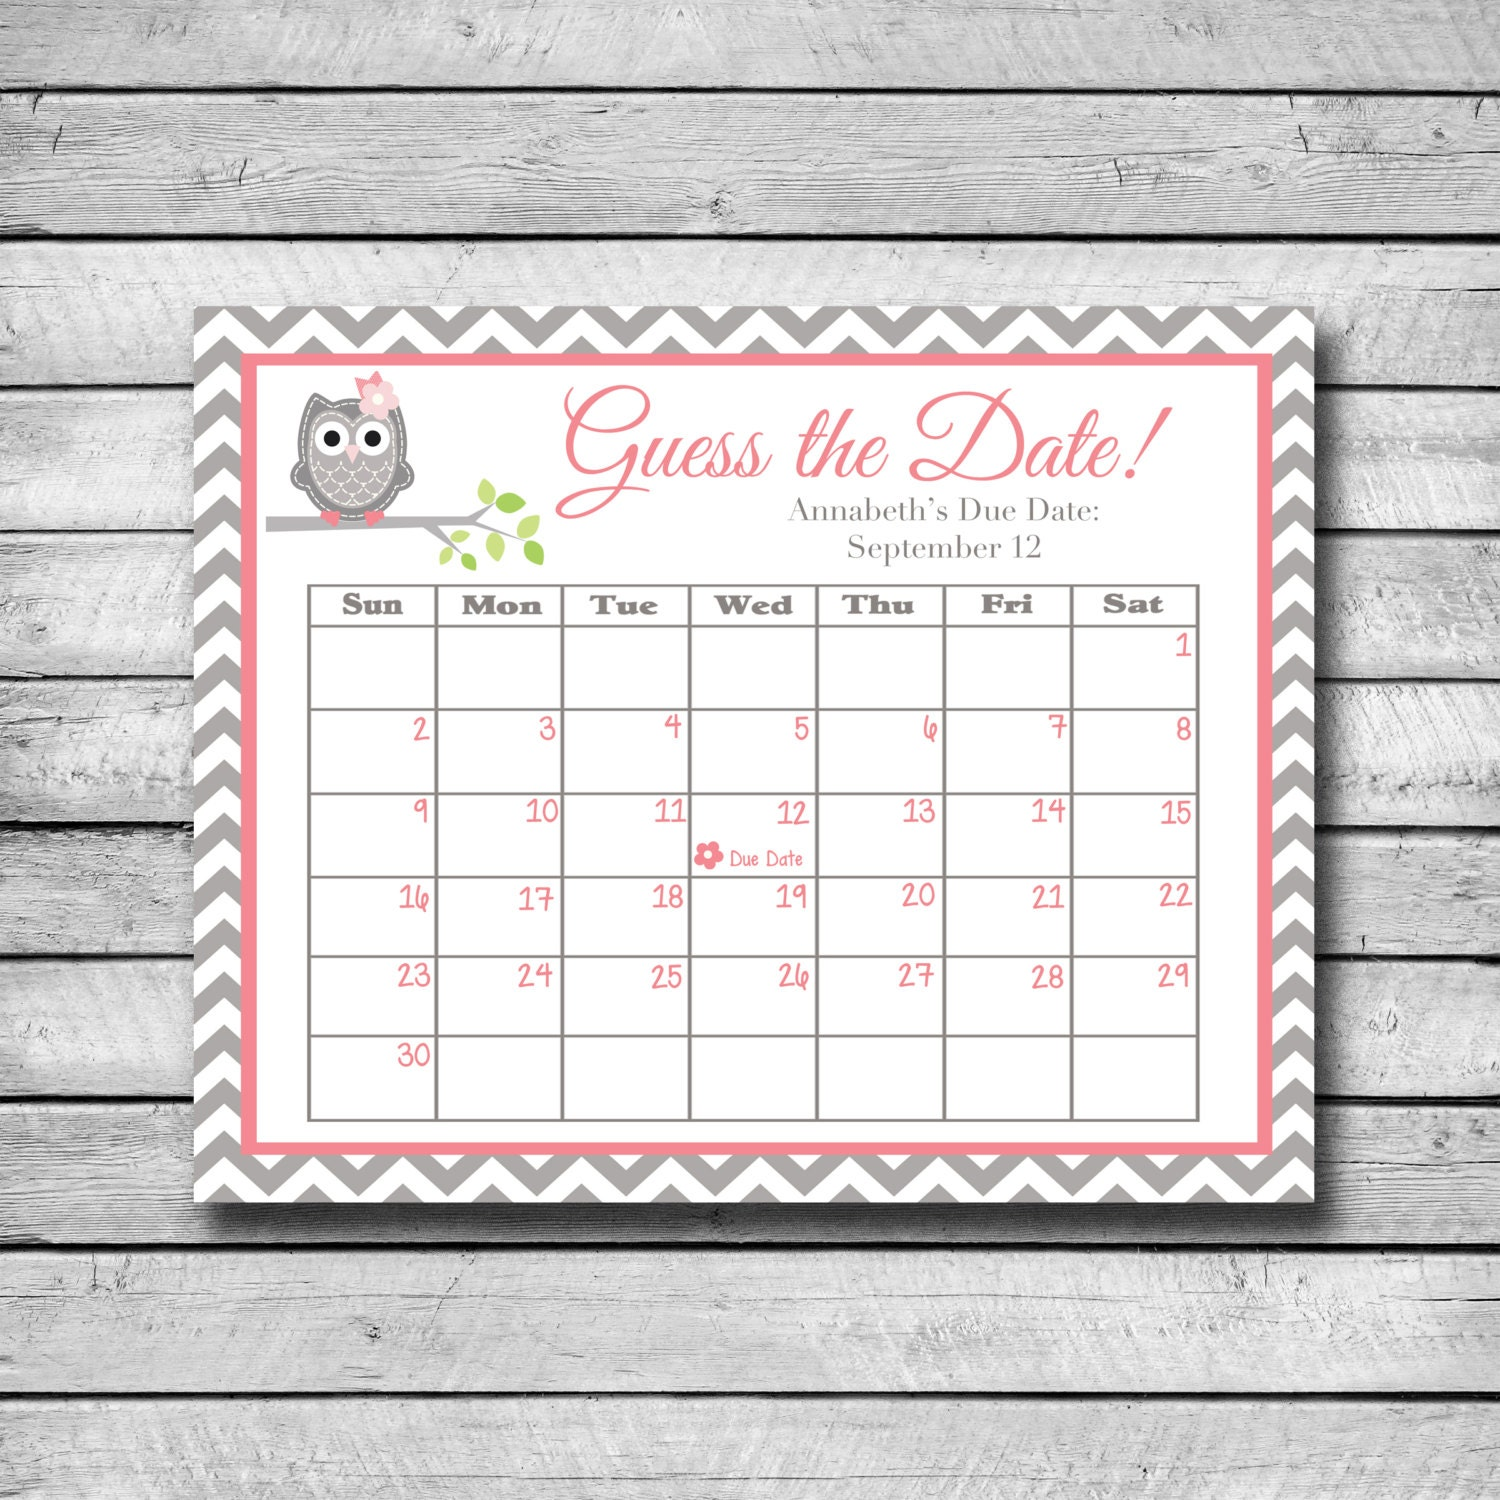 Infant Calendar Ideas : Guess the date pink and grey owl baby shower game due